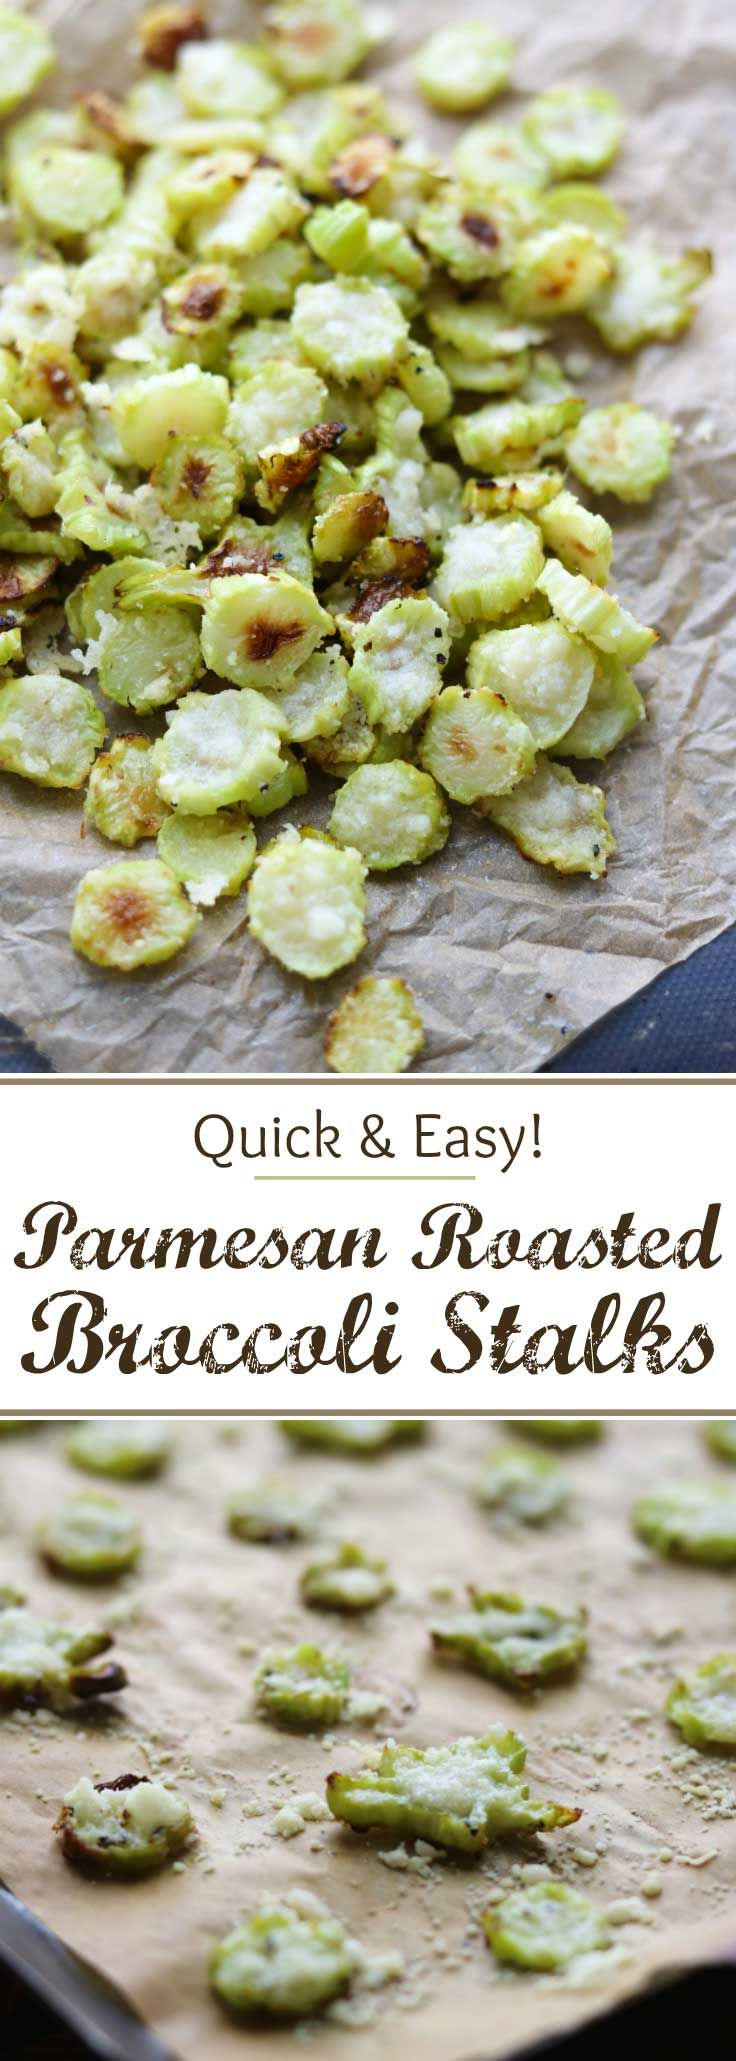 Save money – don't throw away your broccoli stalks! These Parmesan Roasted Broccoli Stalks are so easy and even kids love them! Really! Roasted Parmesan Broccoli Stems are a great healthy snack recipe, or a quick dinner side dish recipe. These oven roasted broccoli chips are quick and easy, and they deliciously use a part of the broccoli that's often discarded. Plus, you get some really cute, fun shapes, too – a perfect way to get your kids to eat more vegetables…